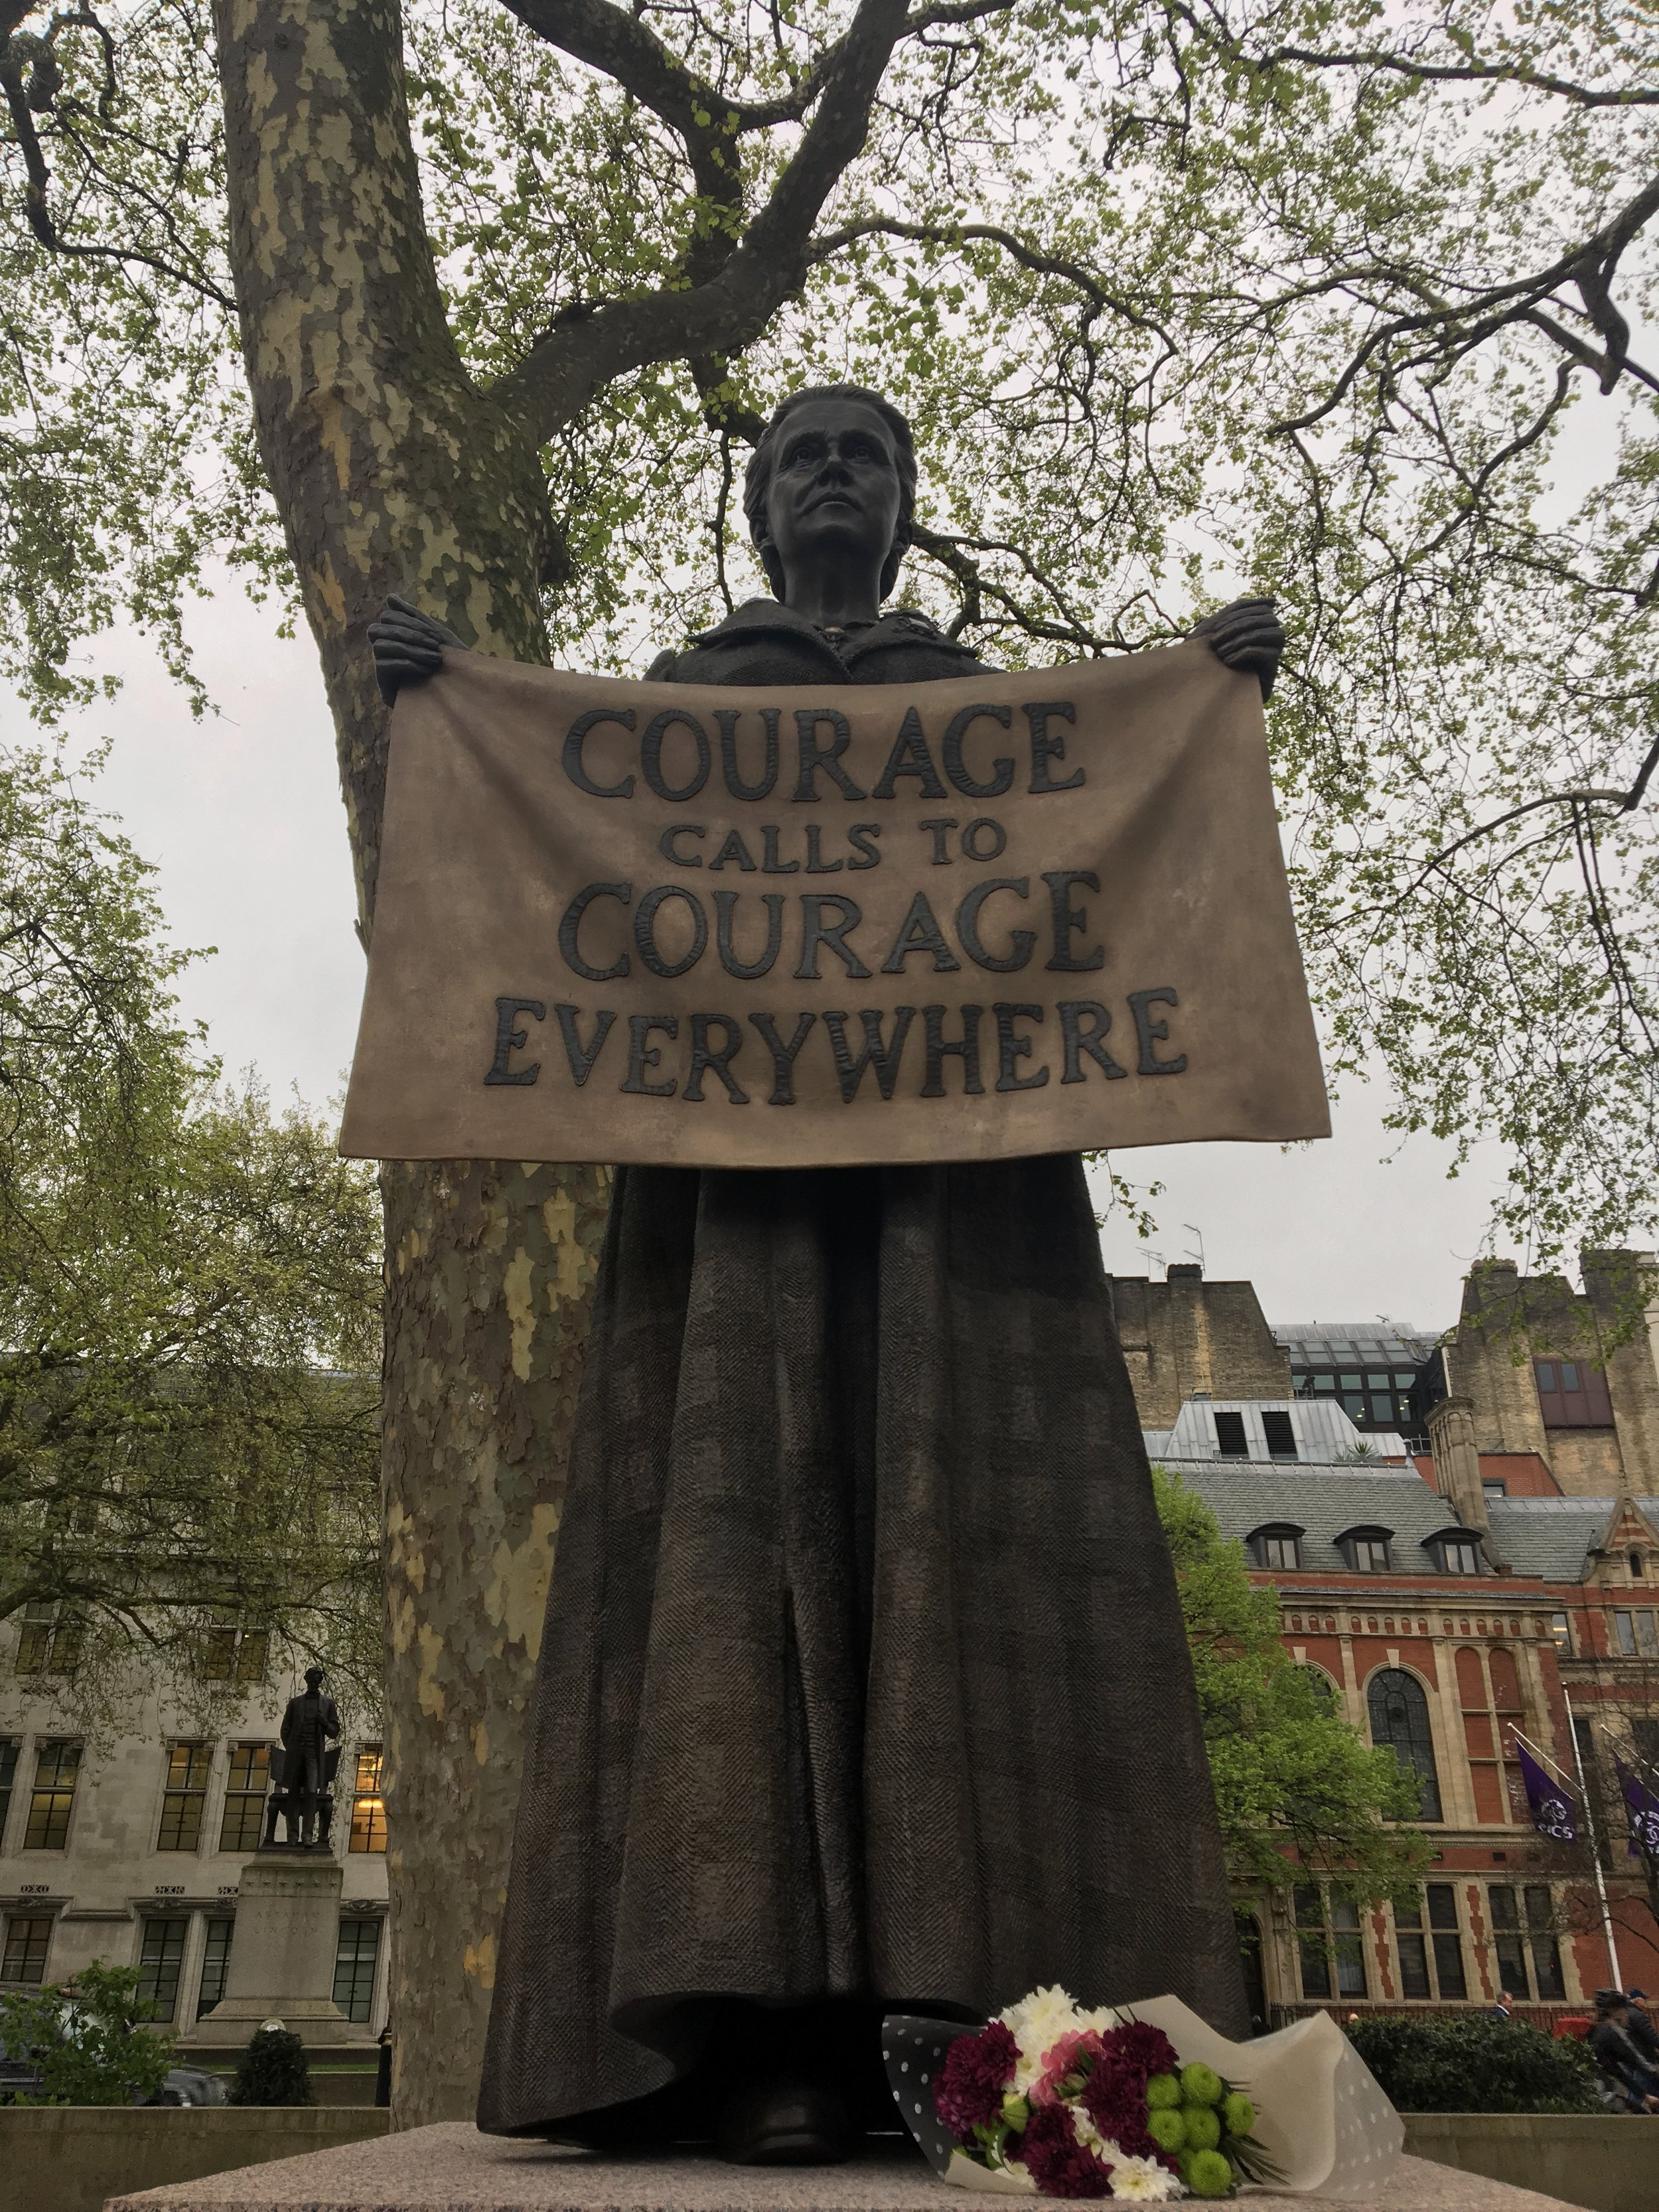 The statue of Millicent Fawcett in Parliament Square, London